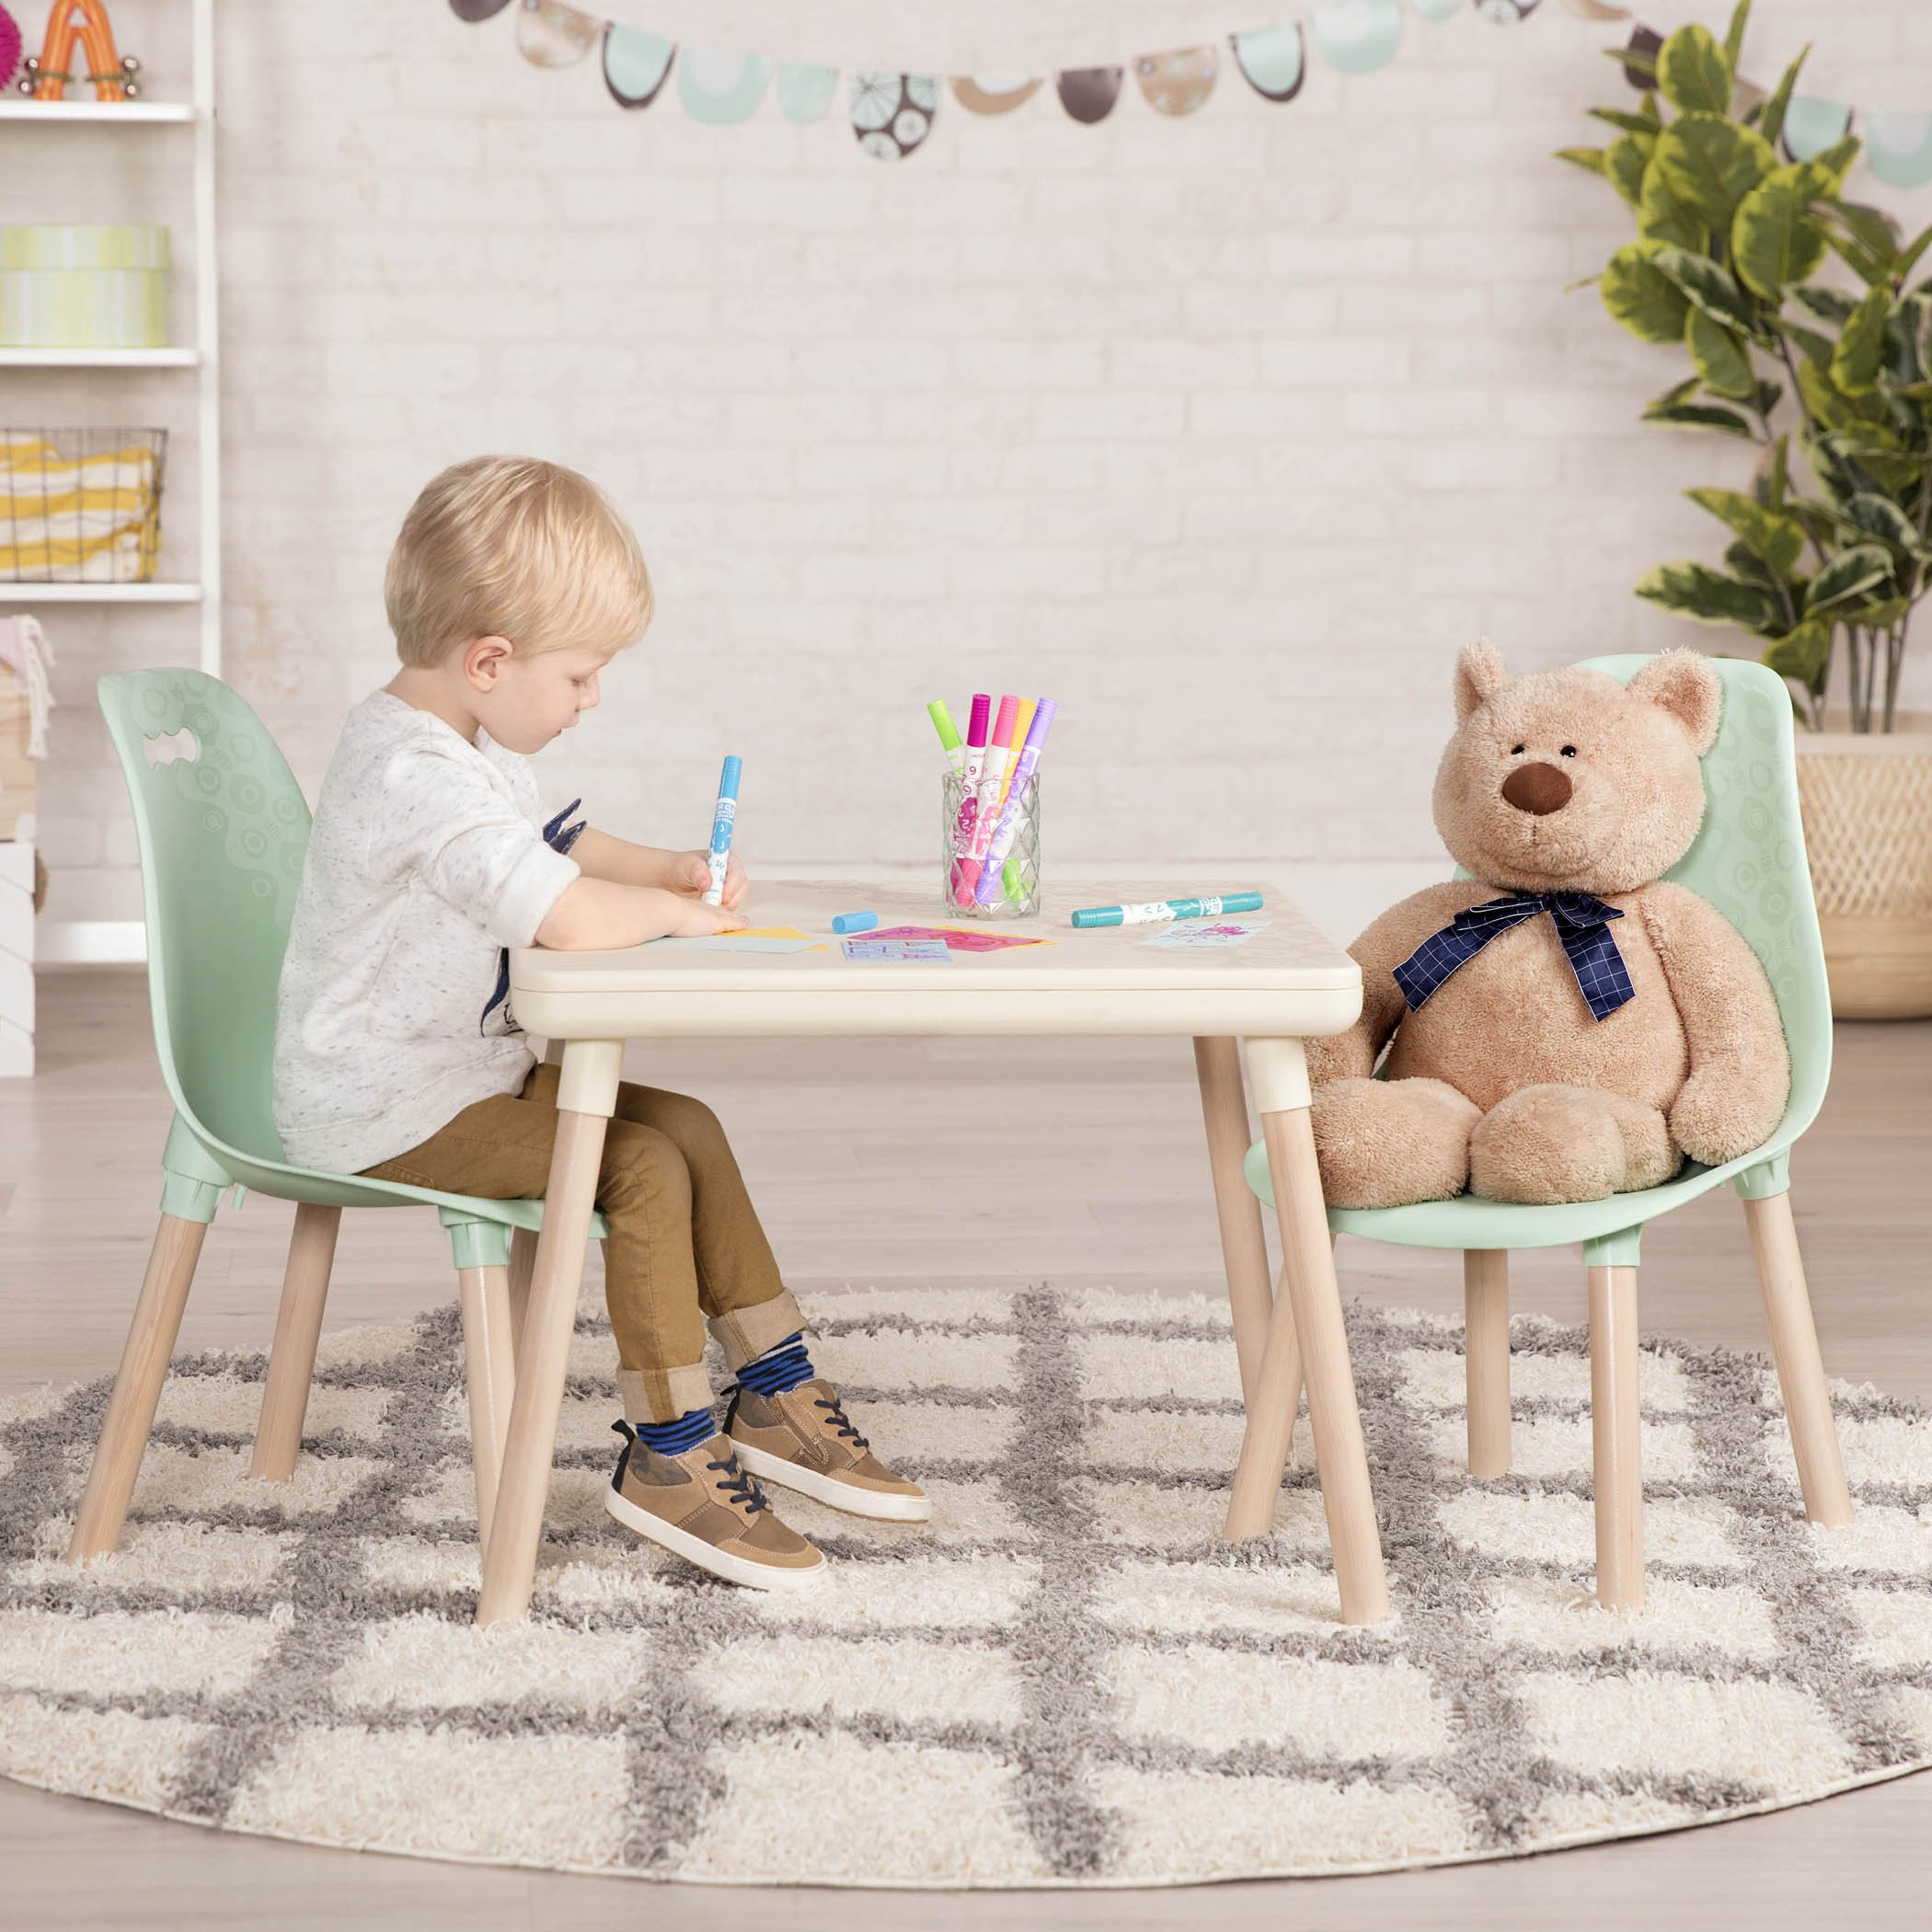 B toys – Kids Furniture Set – 1 Craft Table & 2 Kids Chairs with Natural Wooden Legs (Ivory and Mint) by B. spaces by Battat (Image #5)